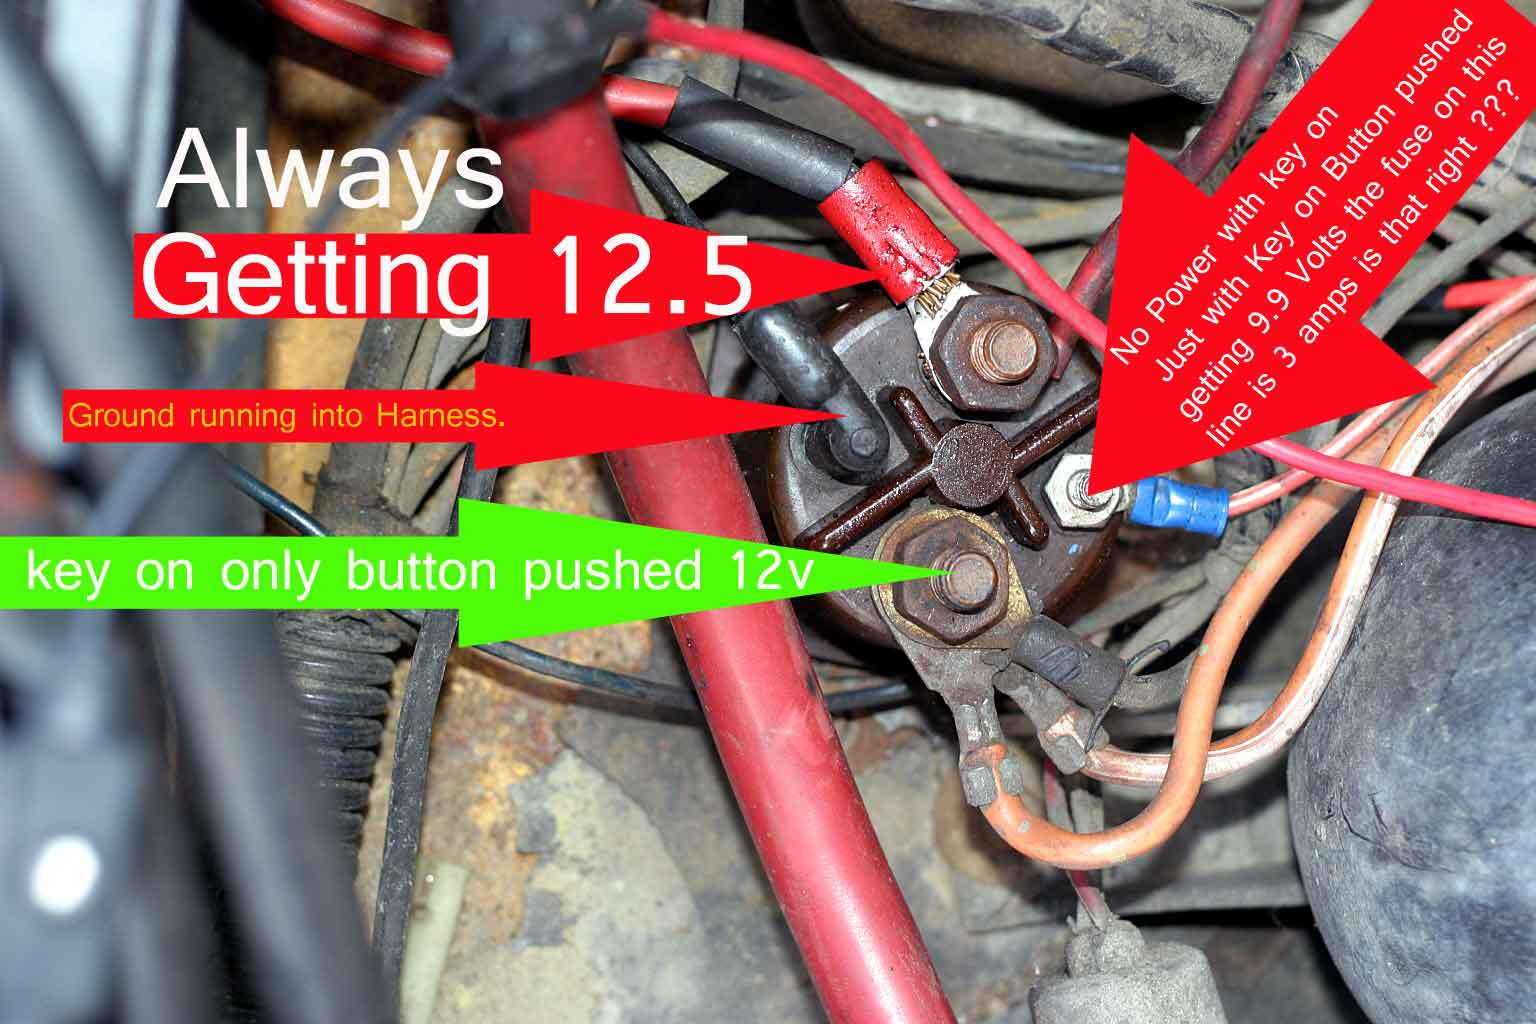 1997 Ford 7 3 Glow Plug Relay Wiring | Wiring Diagram 2019  Glow Plug Relay Wiring on 7.3 starter relay wiring, 7.3 glow plug relay installation, 7.3 glow plugs not working, 7.3 glow plug relay test, 7.3 manual glow plug wiring, 7.3 glow plug relay problems,